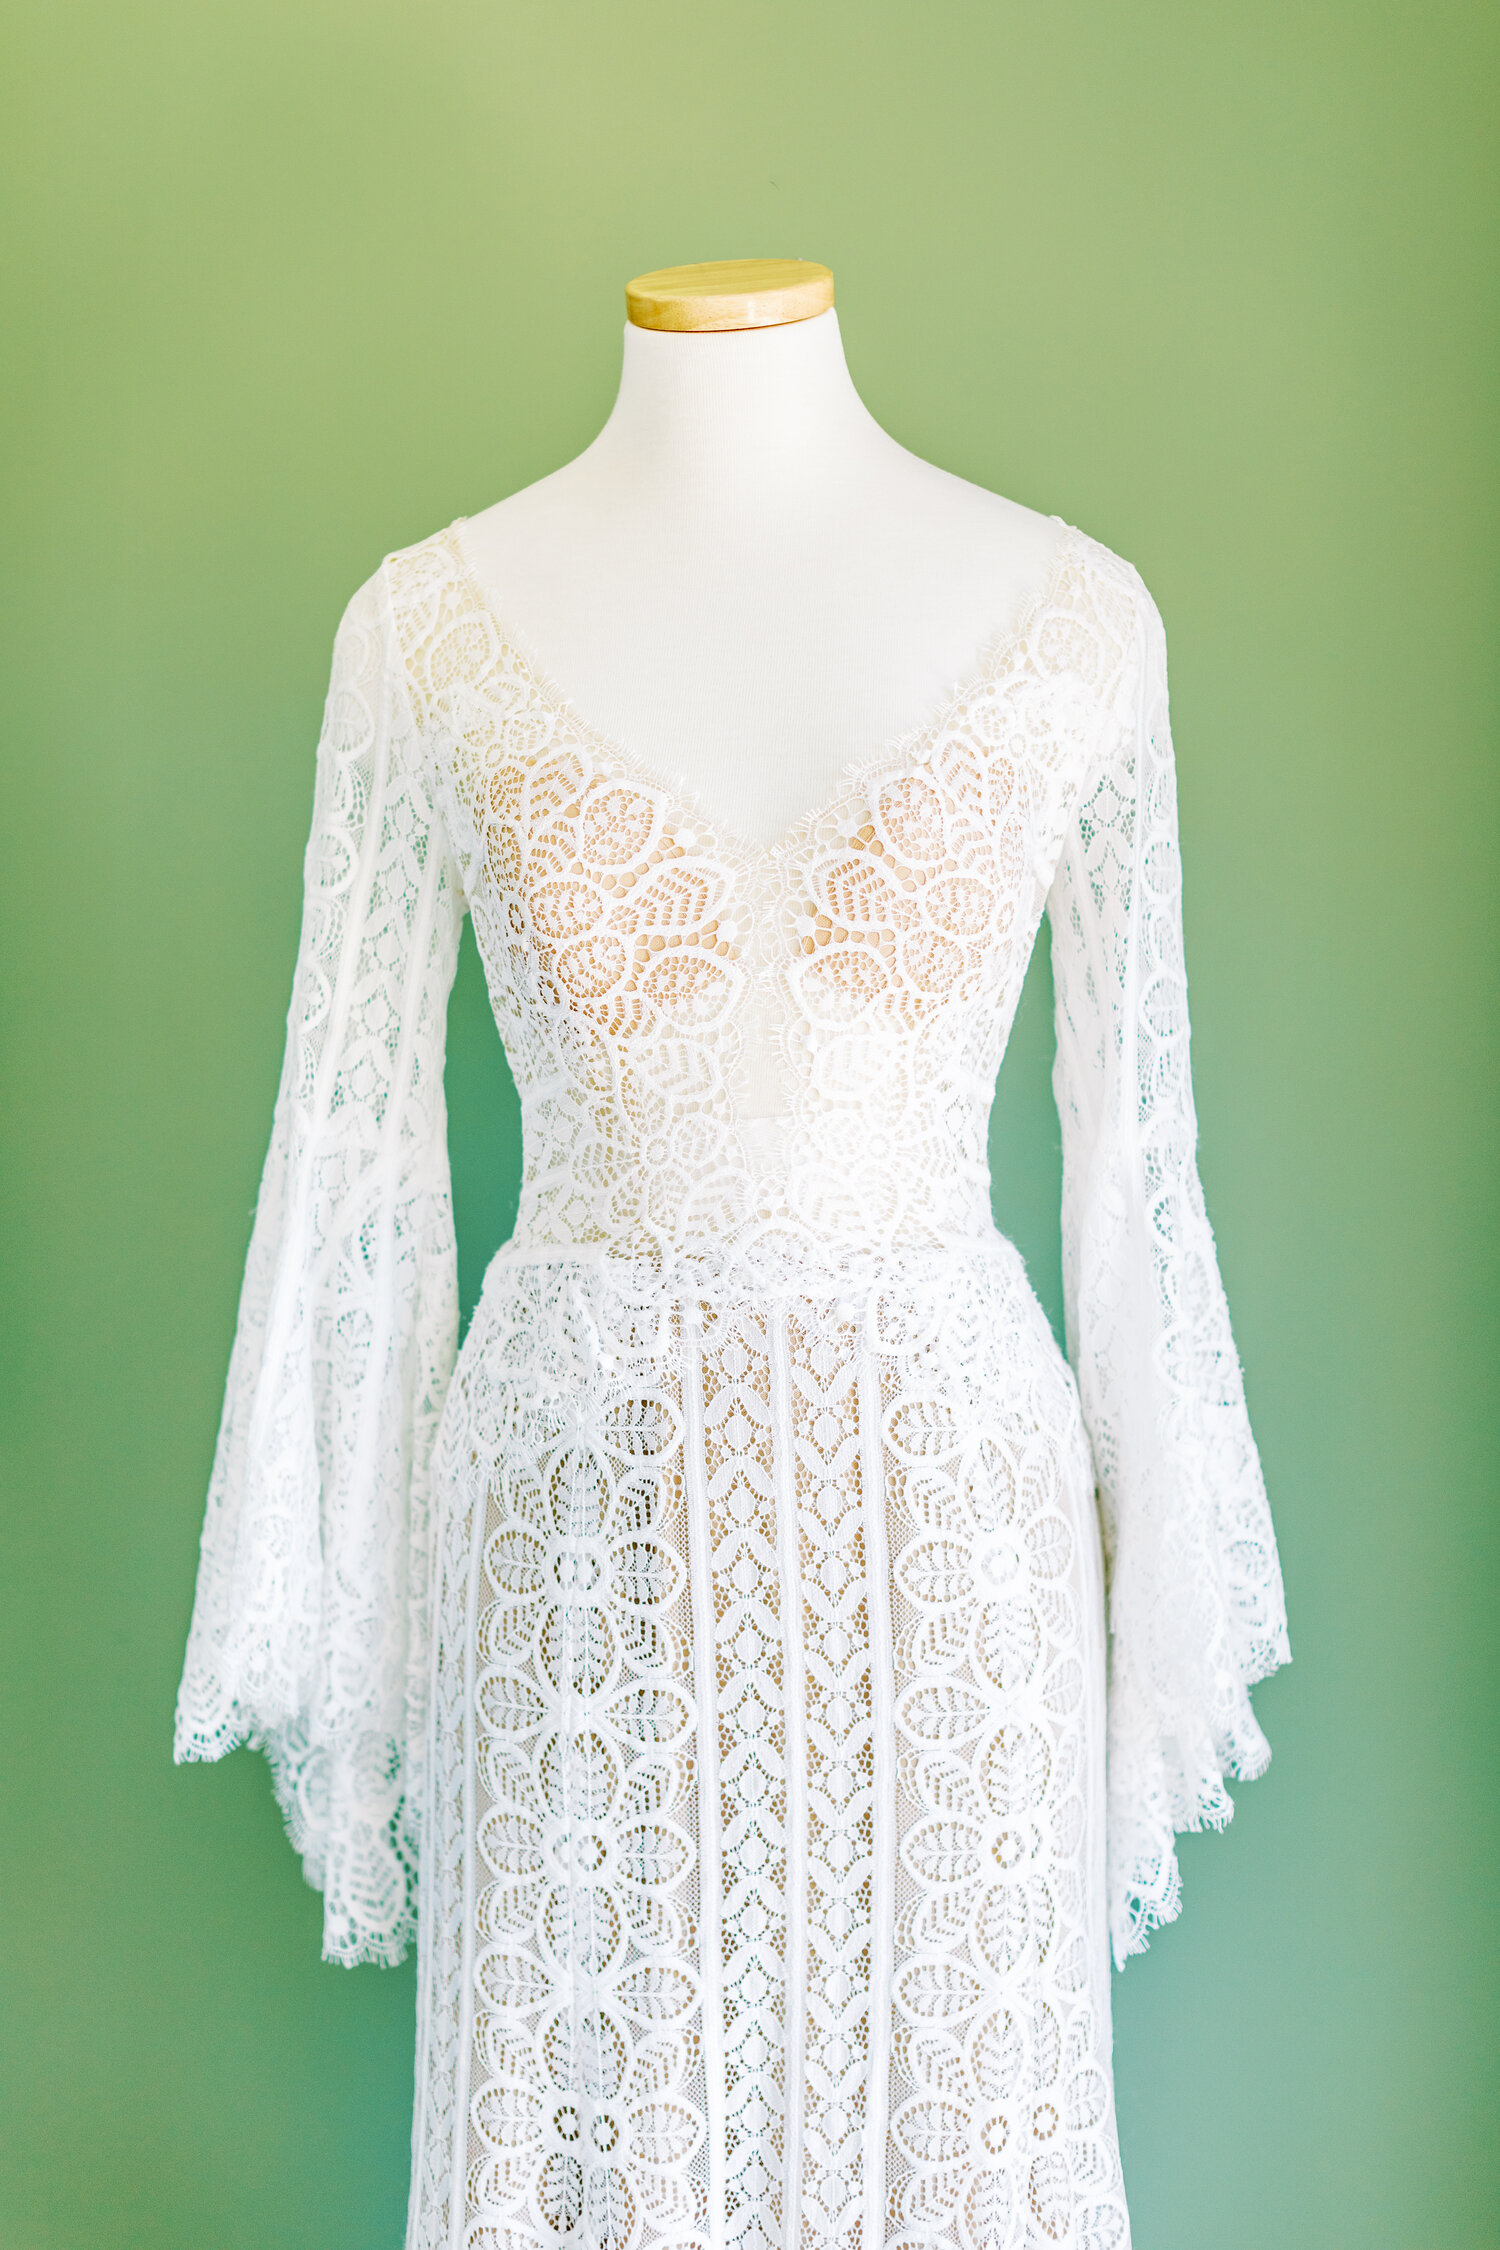 www.santabarbarawedding.com   Events by Fran   Ever After Petite Venue   Kendall Ann Photo   Tangled Lotus   Ever After Bridal   Bride's Lace Wedding Gown